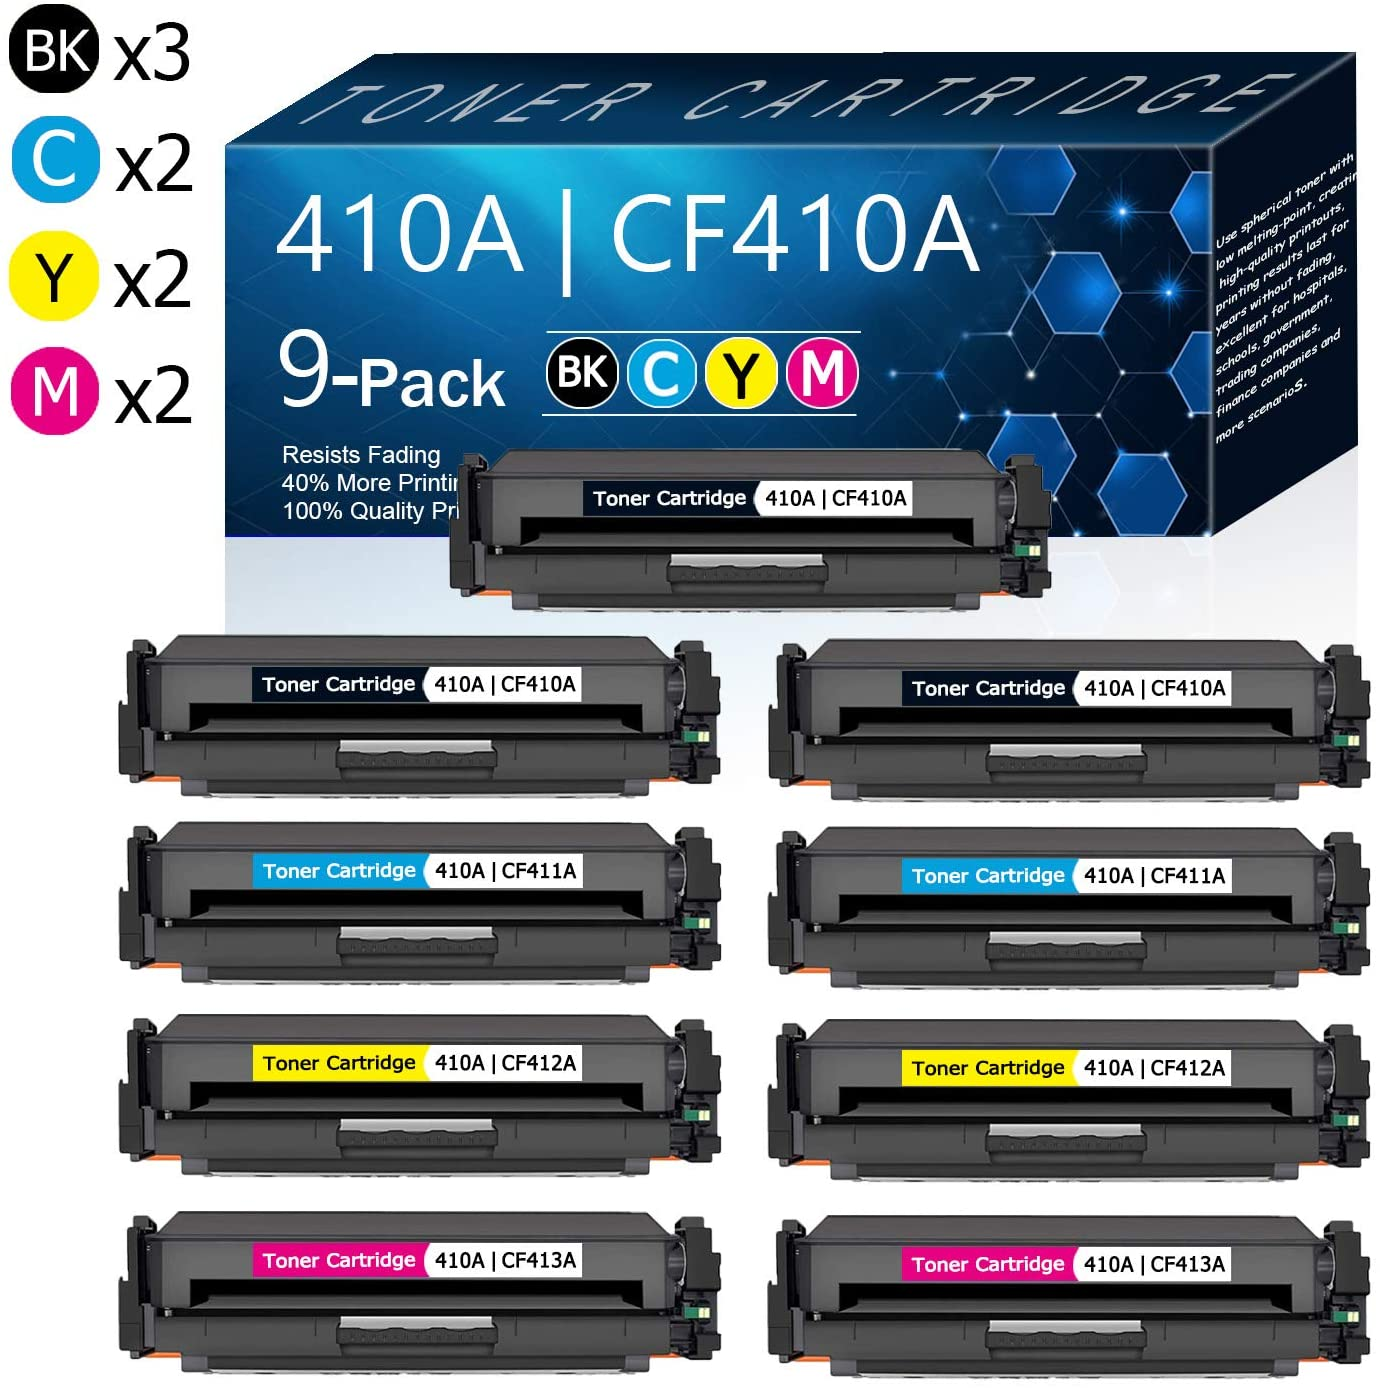 9 Pack (3BK/2C/2Y/2M) 410A | CF410A CF411A CF412A CF413A Compatible Toner Cartridge Replacement for HP Color Pro MFP M477fdn M477fdw M477fnw Pro M452dn M452dw M452nw Printers Toner.